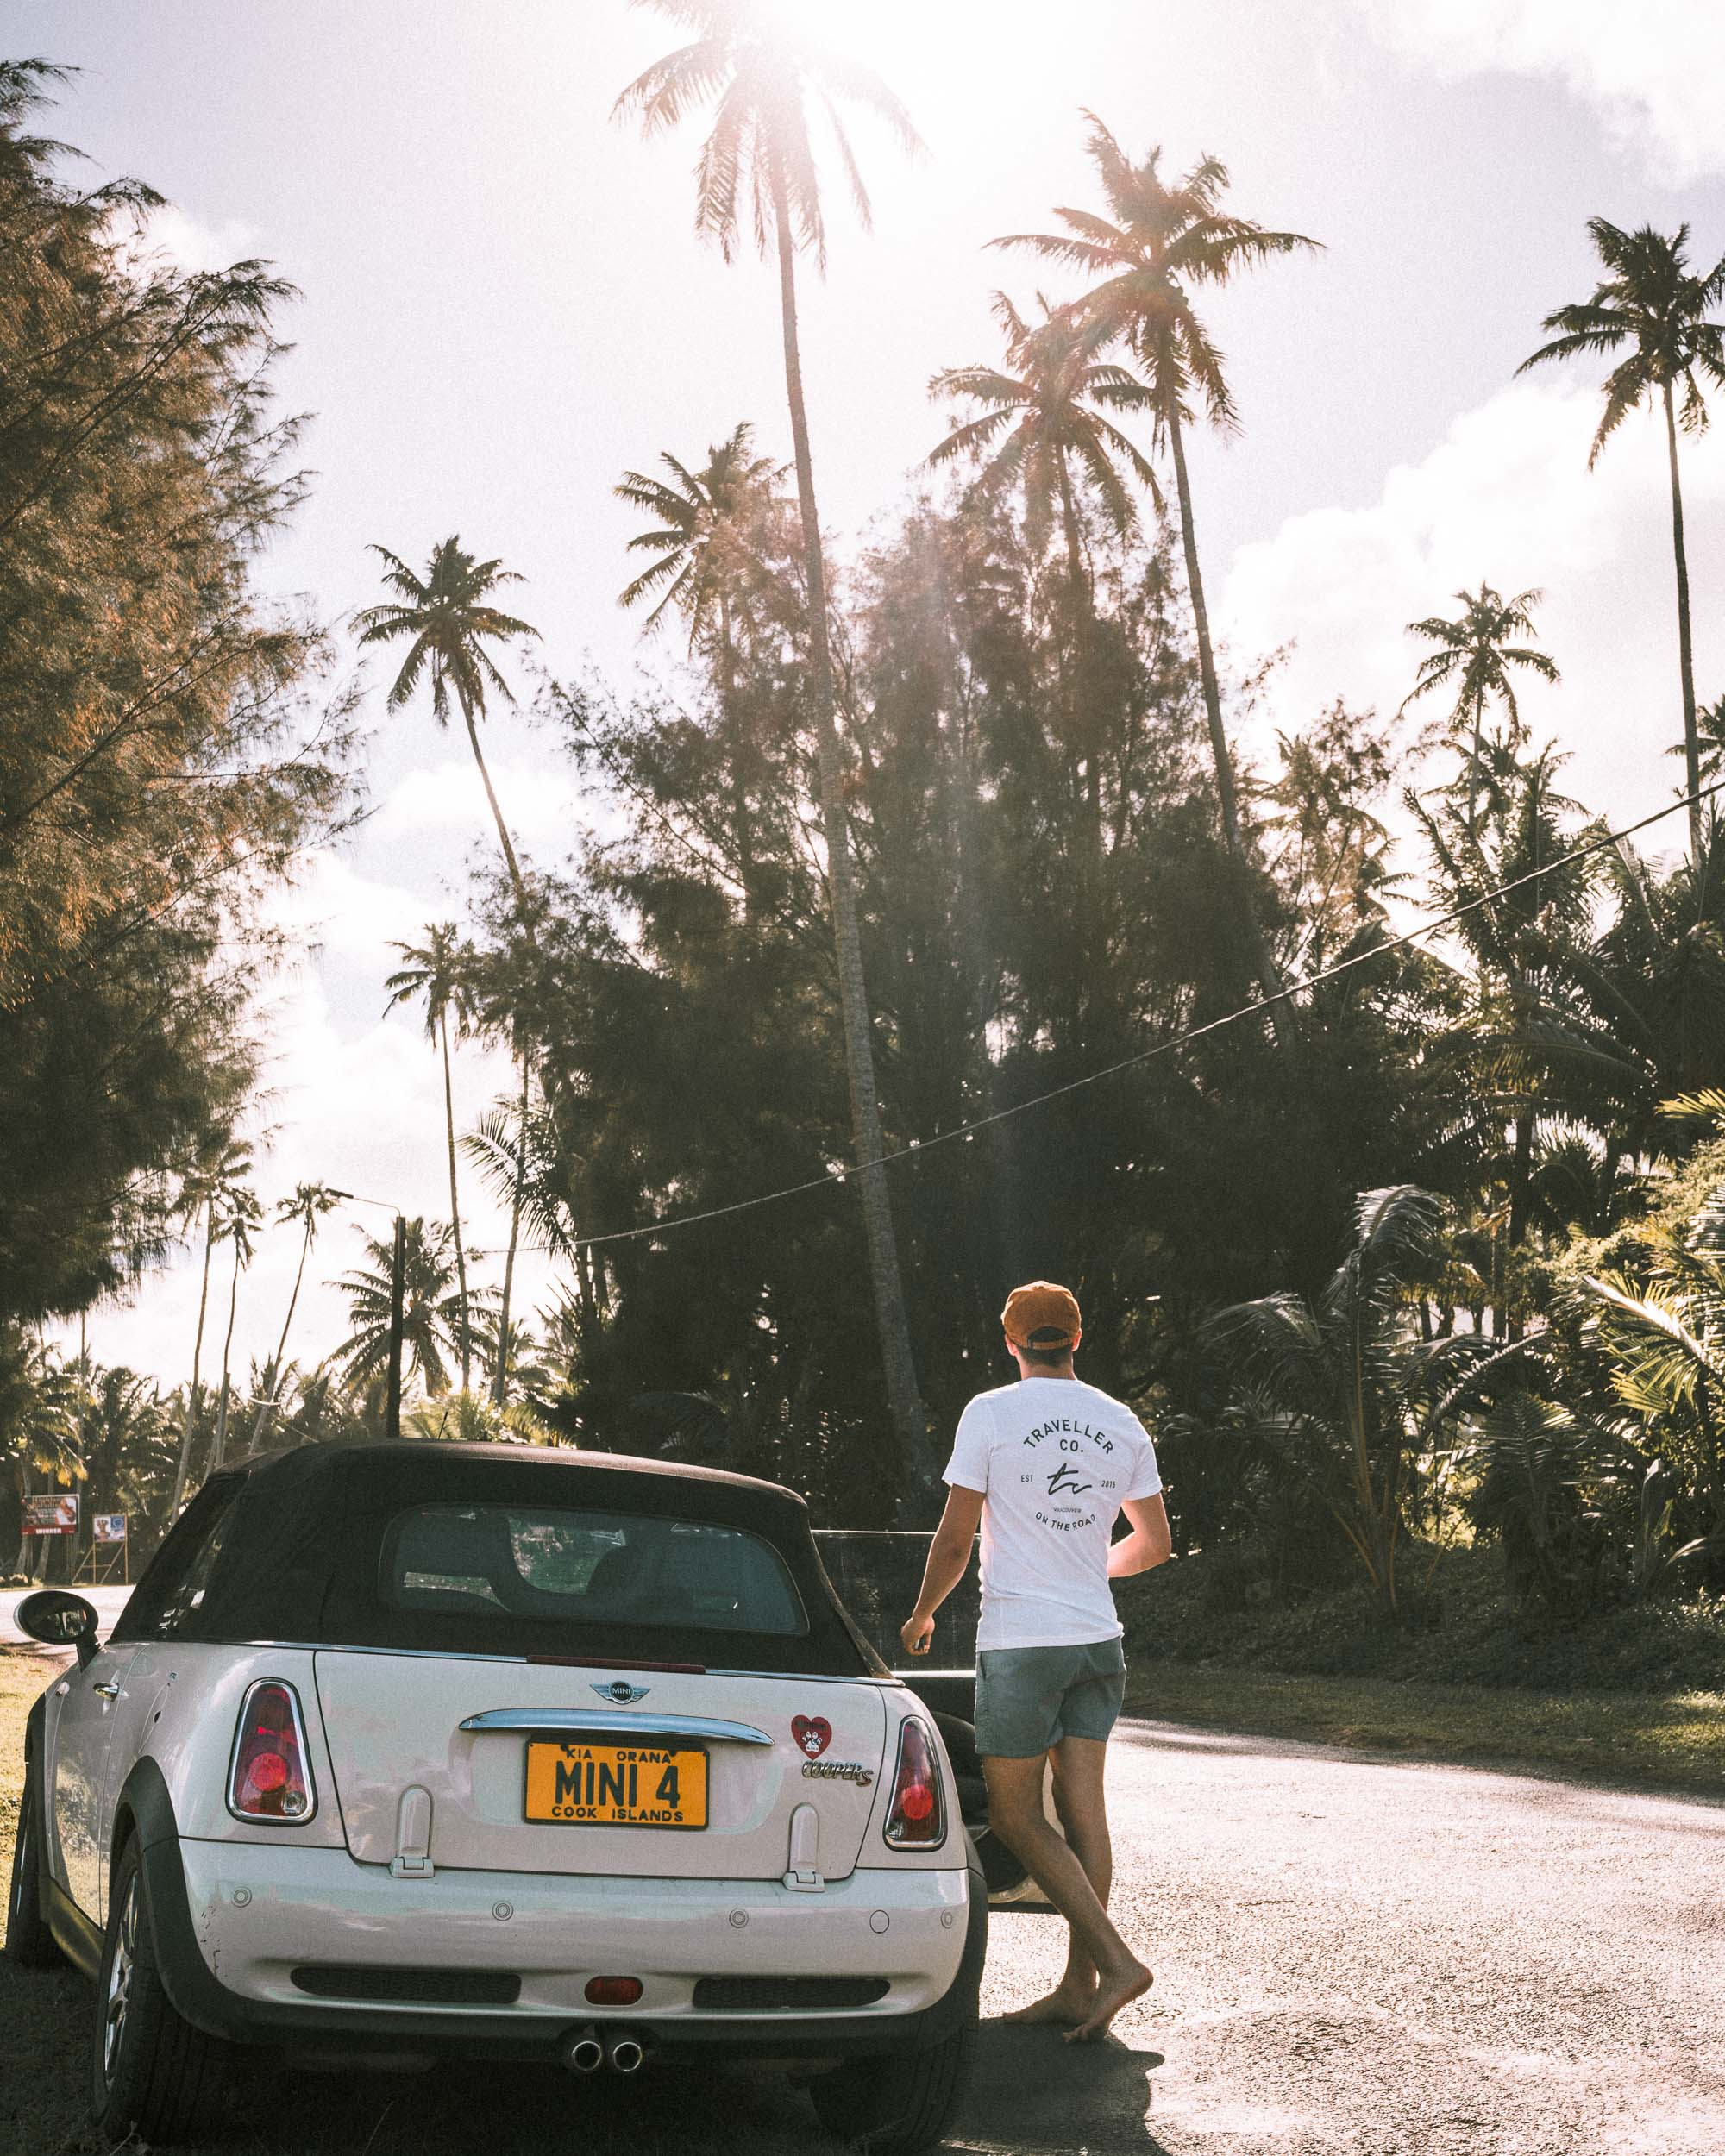 Our mini cooper on the main road of Rarotonga, Cook Islands